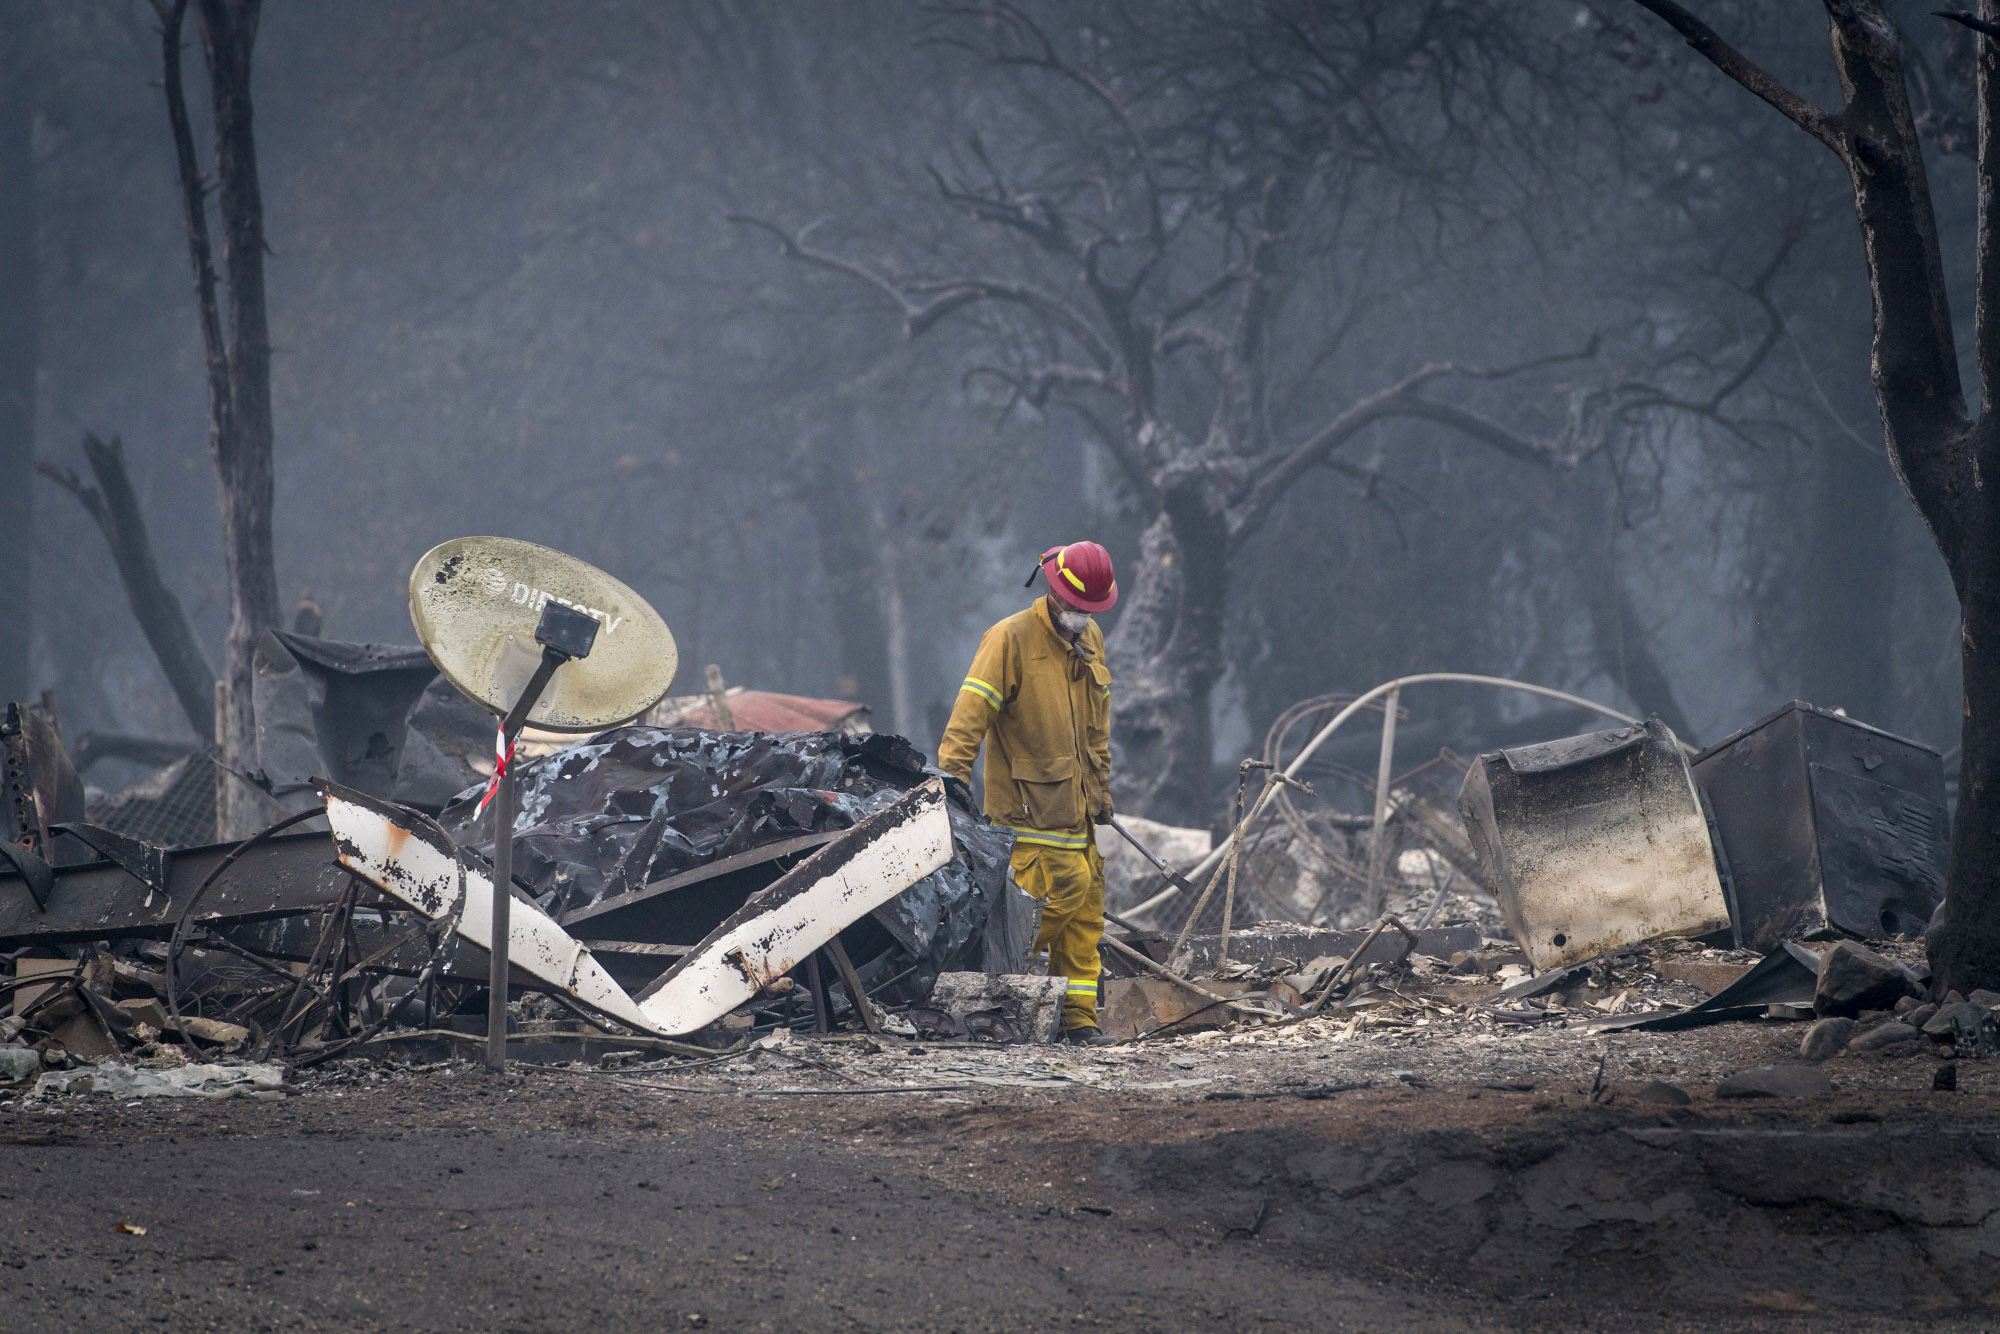 A firefighter searches a burned-out building in Paradise, Calif., on Nov. 15, 2018. MUST CREDIT: Bloomberg photo by David Paul Morris.